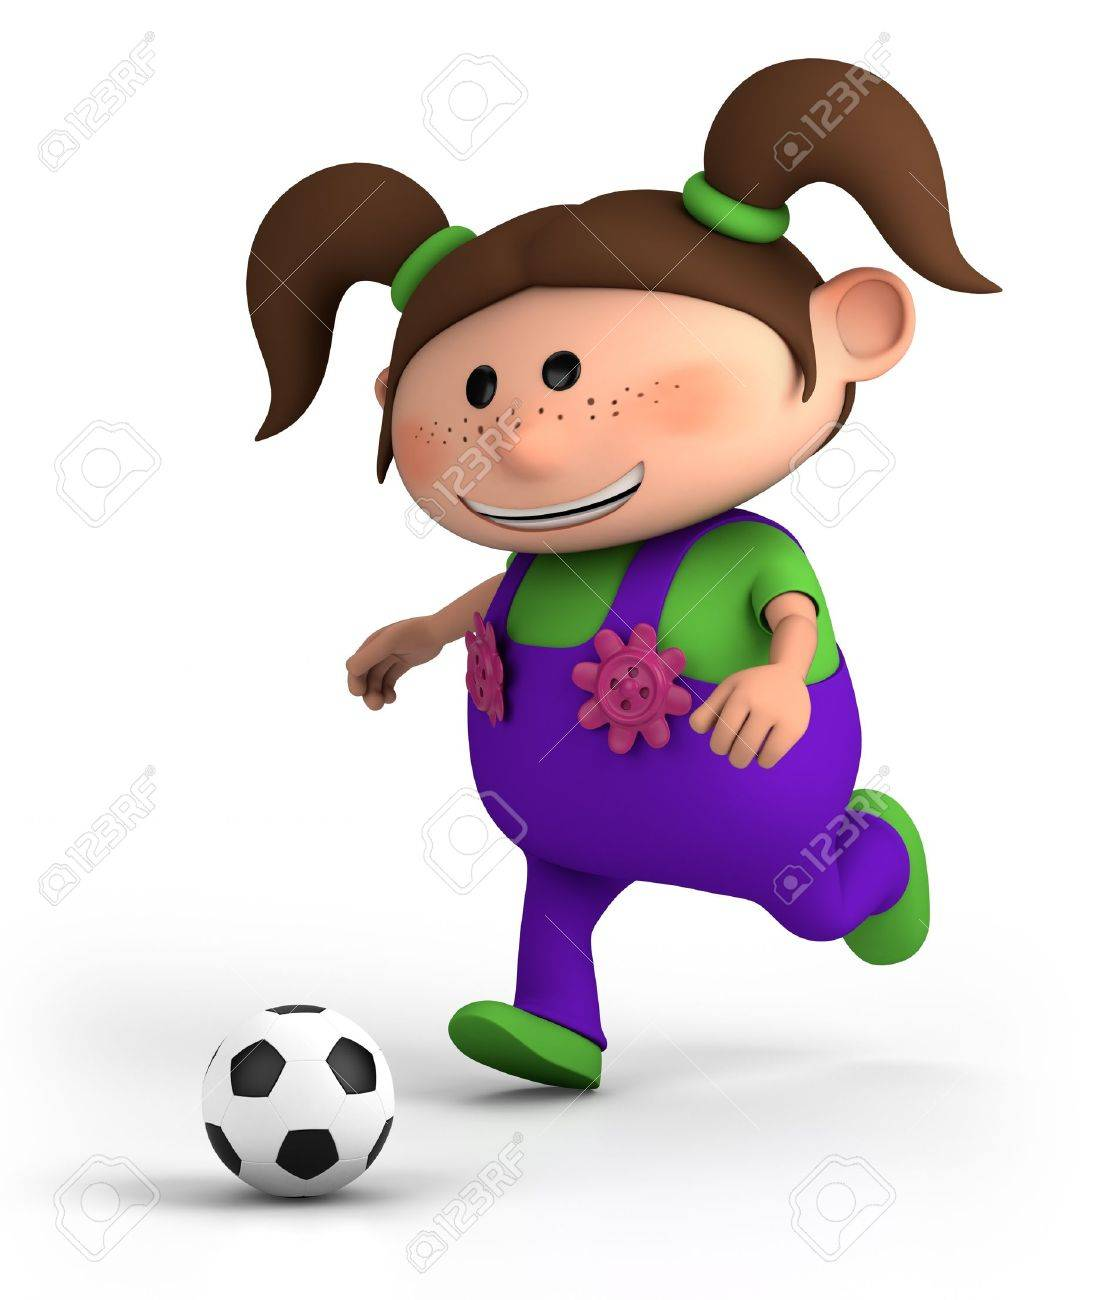 cute little cartoon girl playing soccer - high quality 3d illustration Stock Photo - 9970131